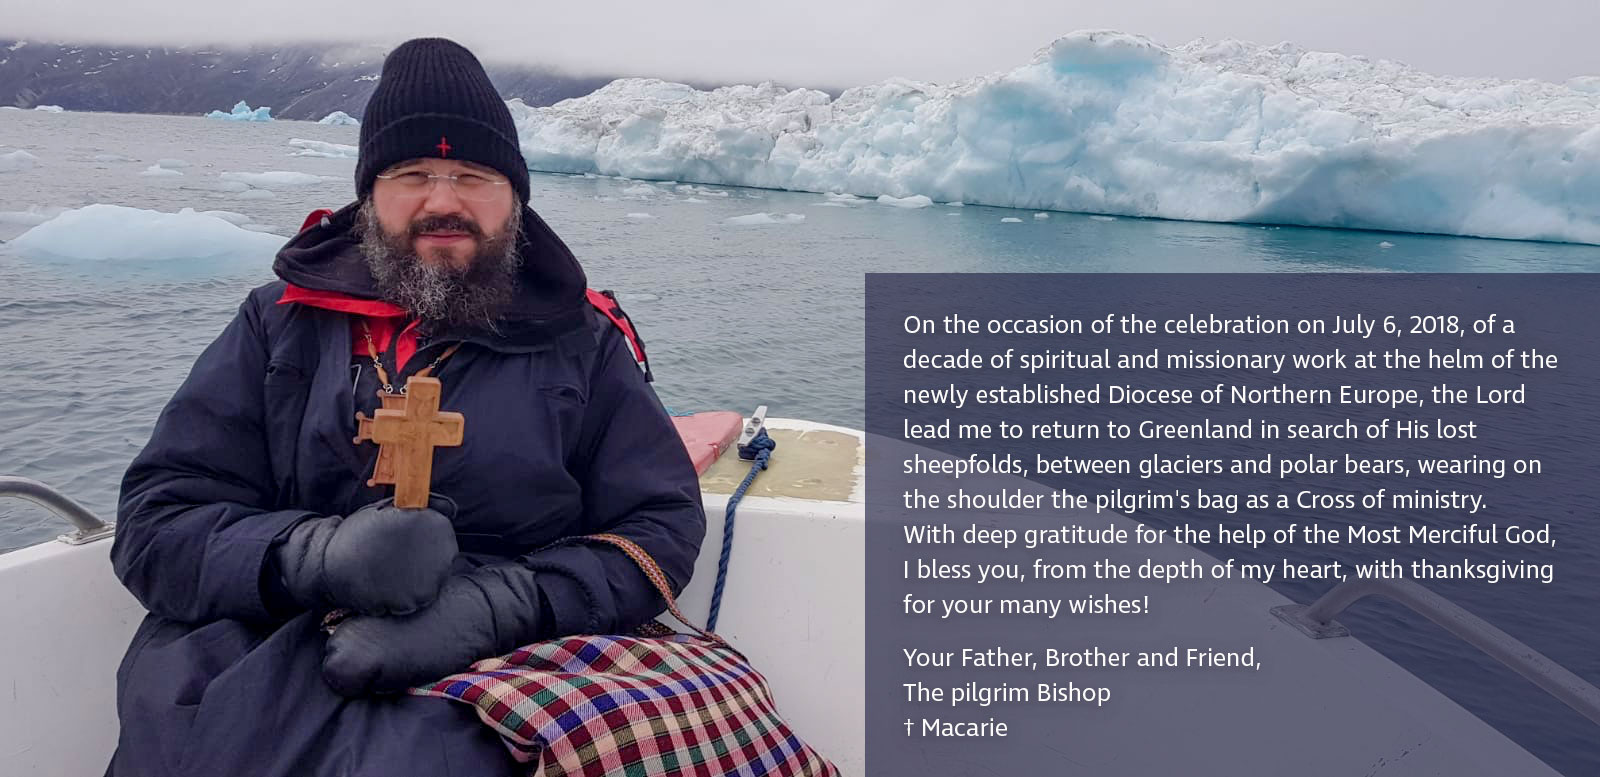 """His Grace Macarie in Greenland: """"I am wearing on the shoulder the pilgrim's bag as a Cross of ministry"""""""